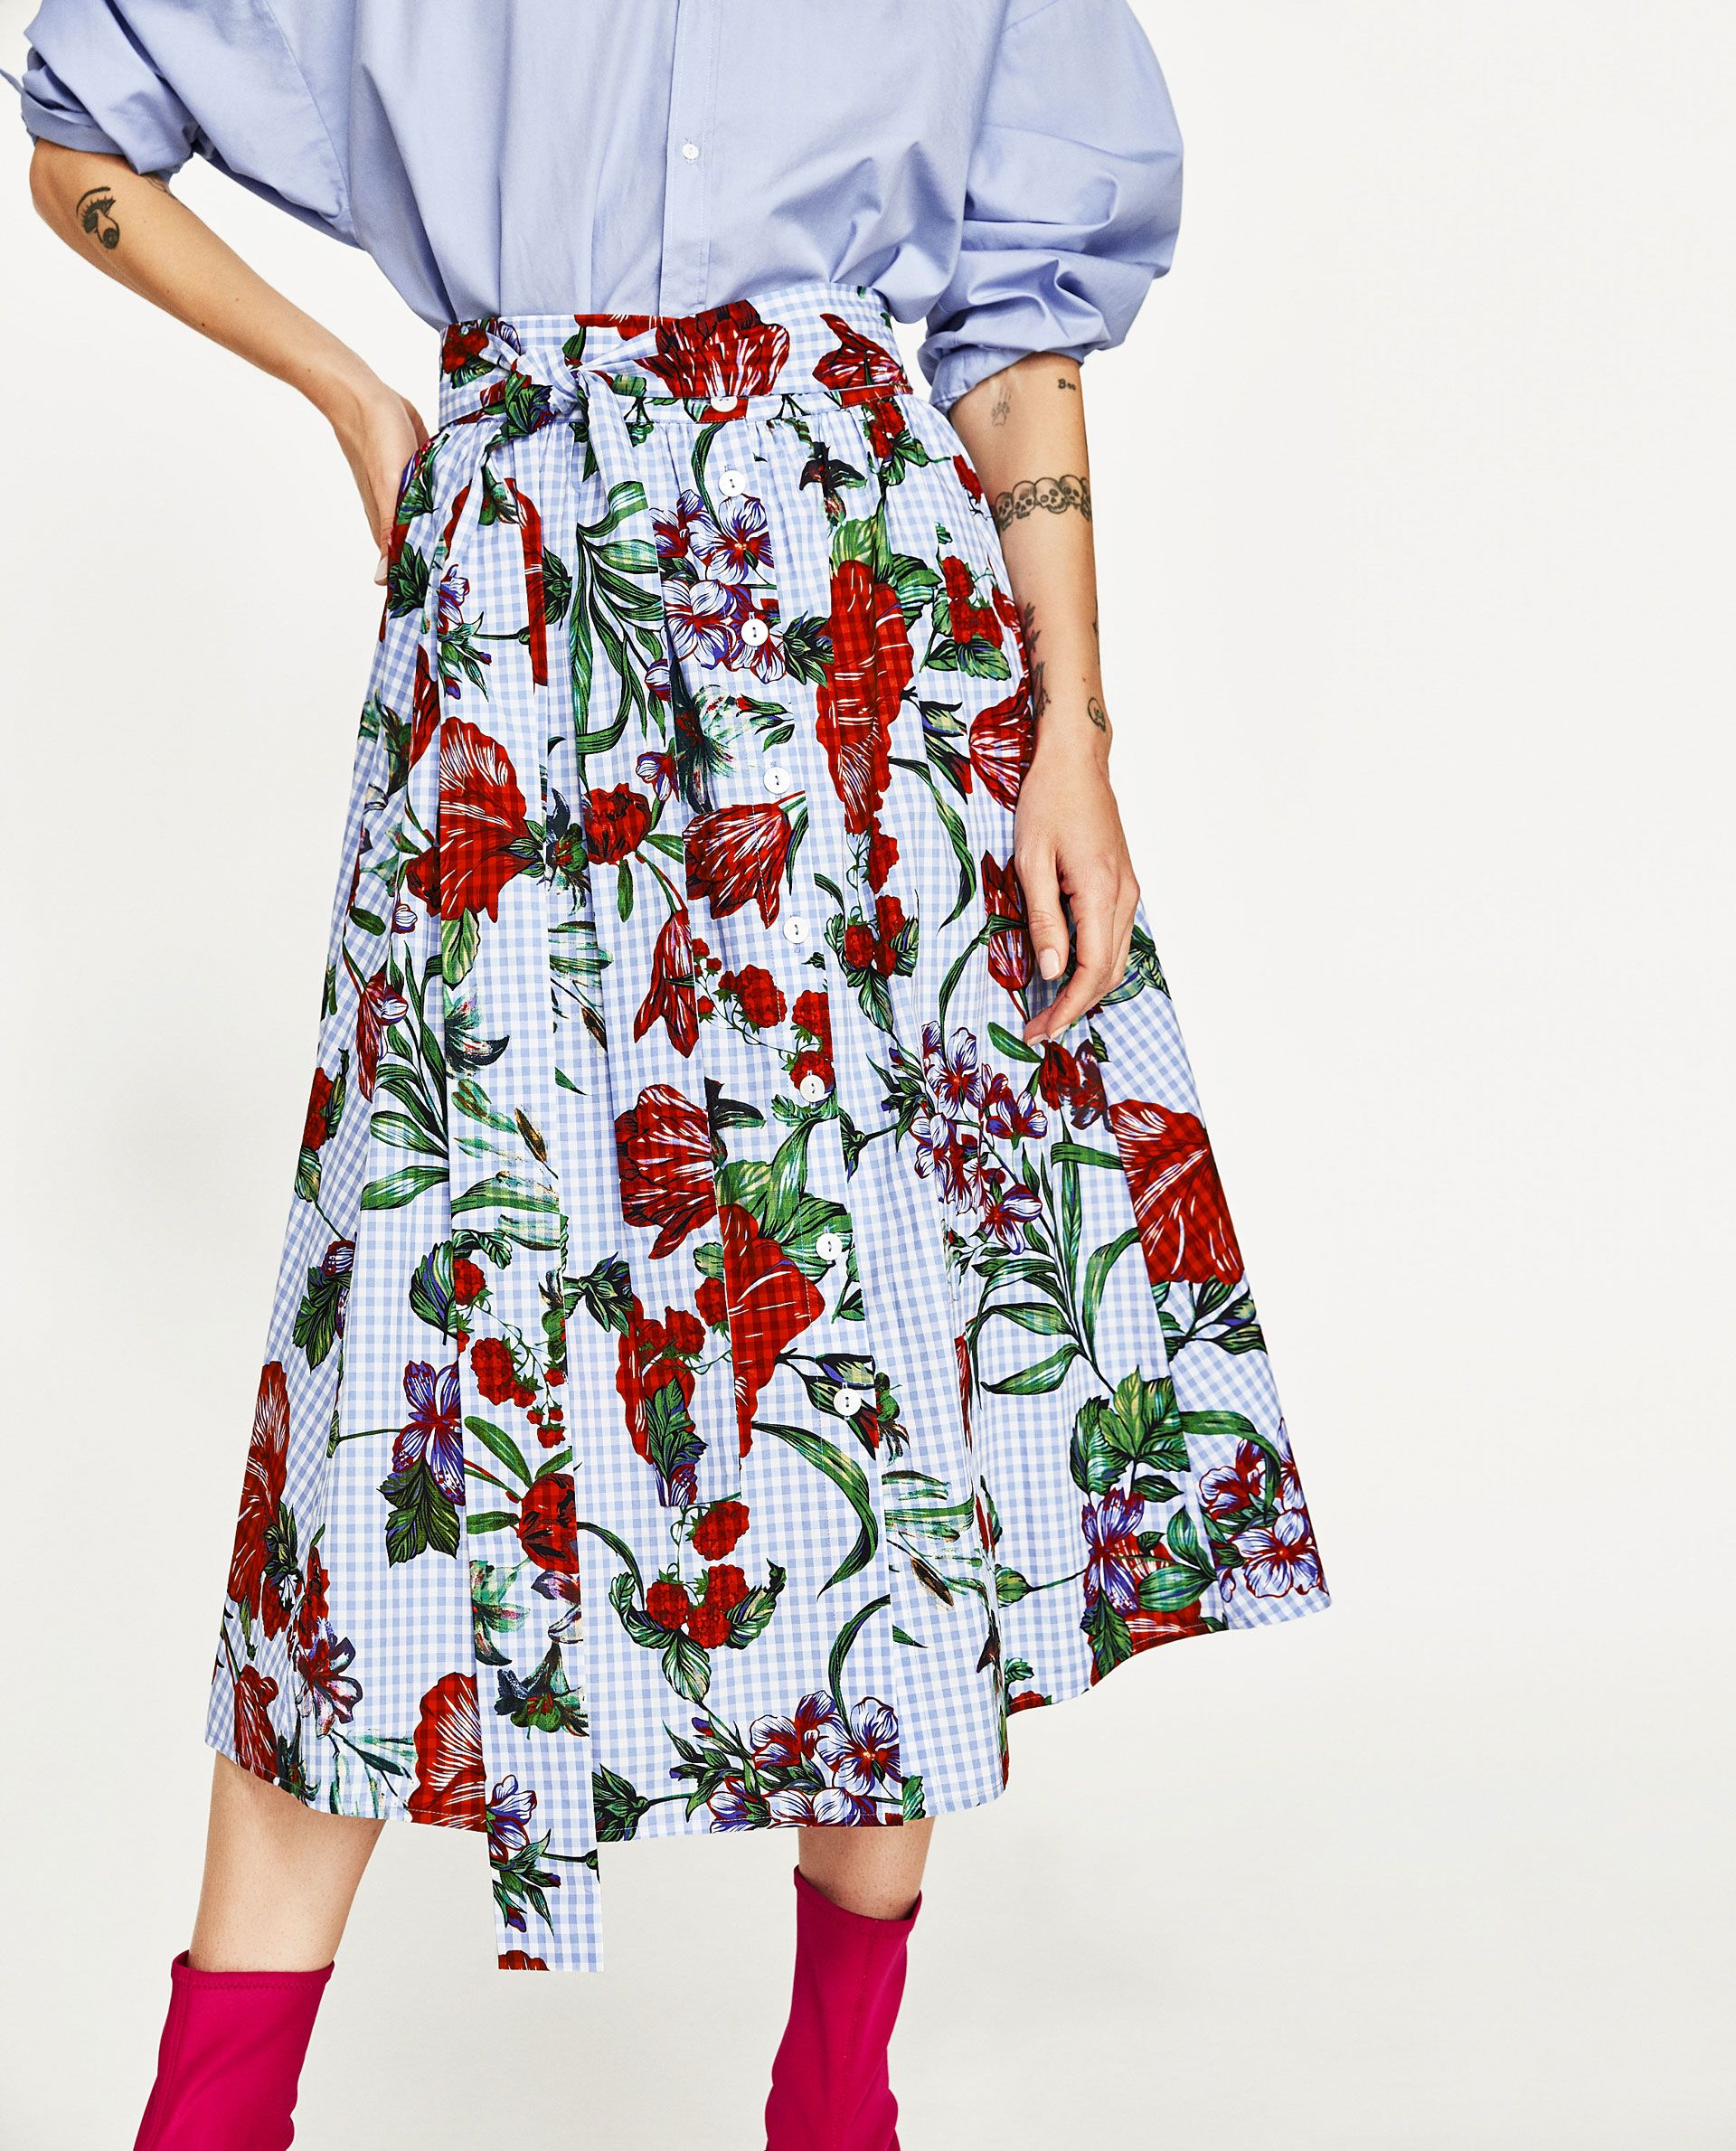 a7db614ba5 Image 2 of FLORAL PRINT GINGHAM SKIRT from Zara | Core style | Maxi ...